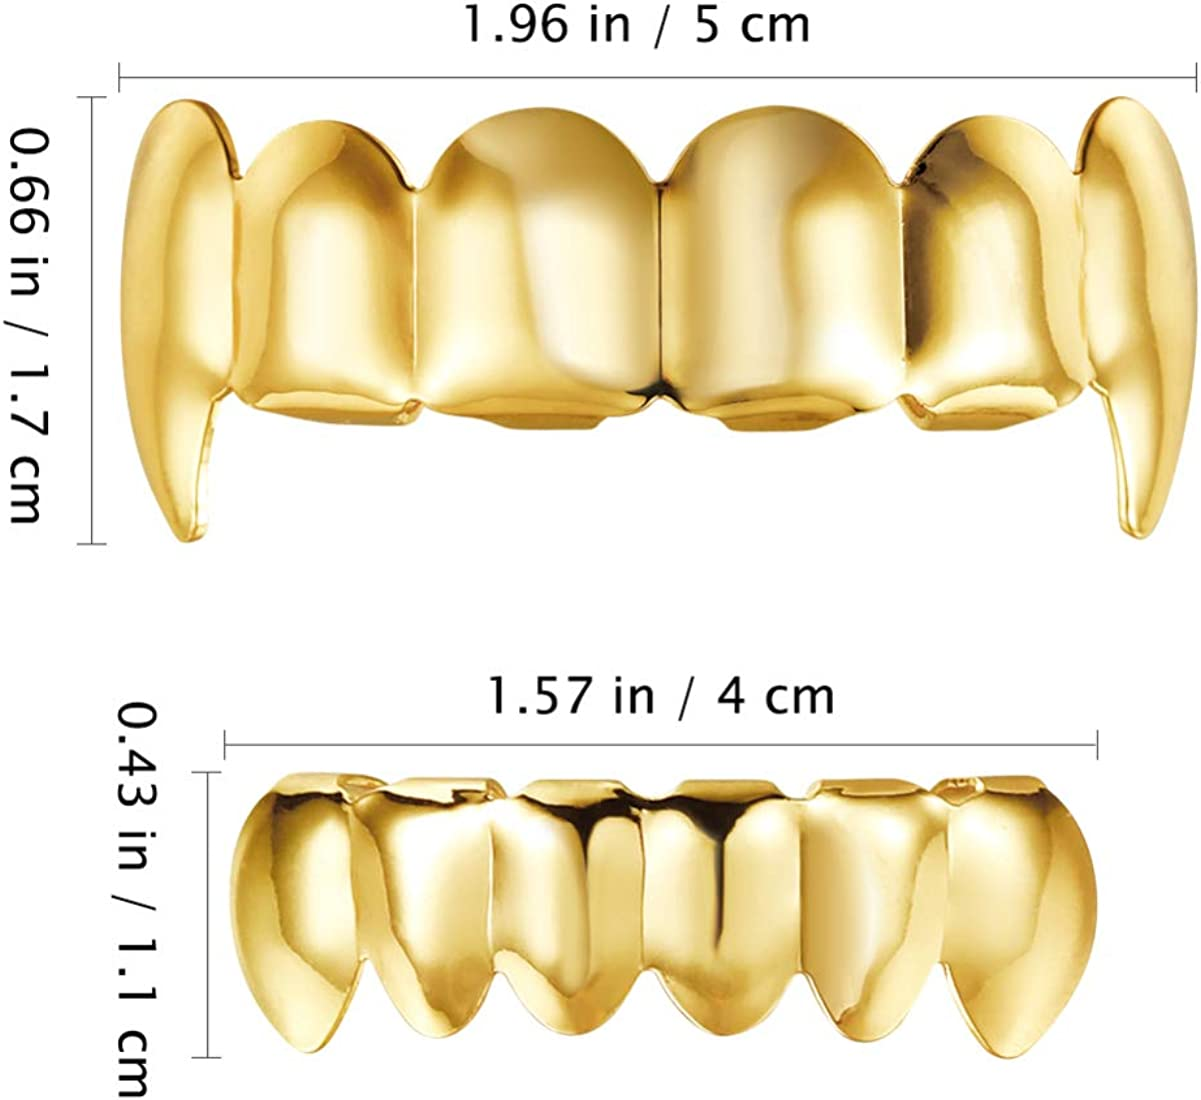 NUOBESTY Mouth Top Bottom Hip Hop Teeth, Gold Teeth Caps for Men and Women, Shiny Teeth Braces for Adults